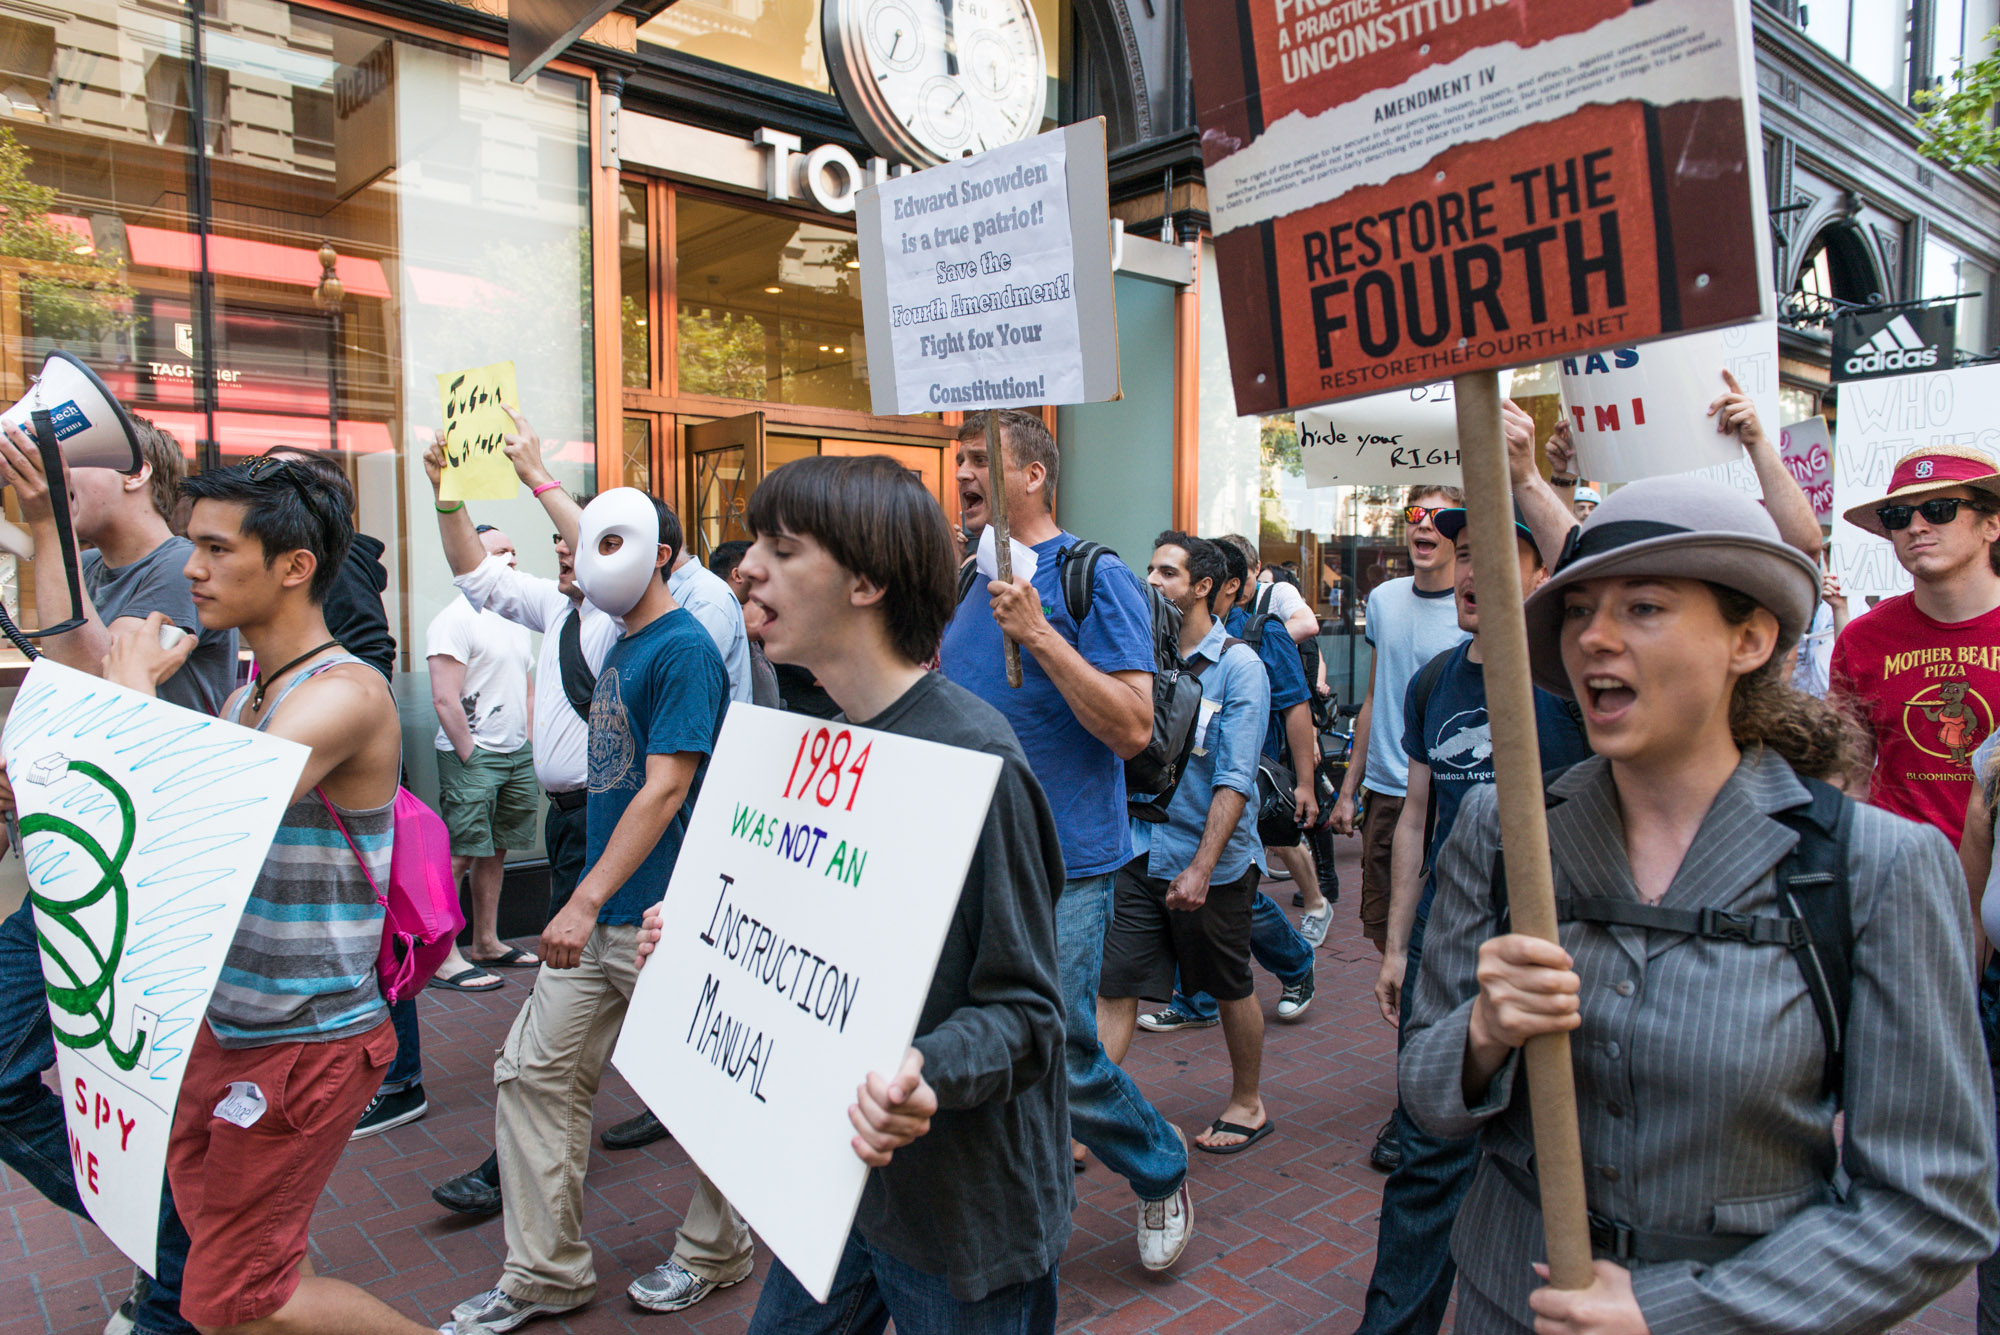 Hundreds of people protest against the NSA